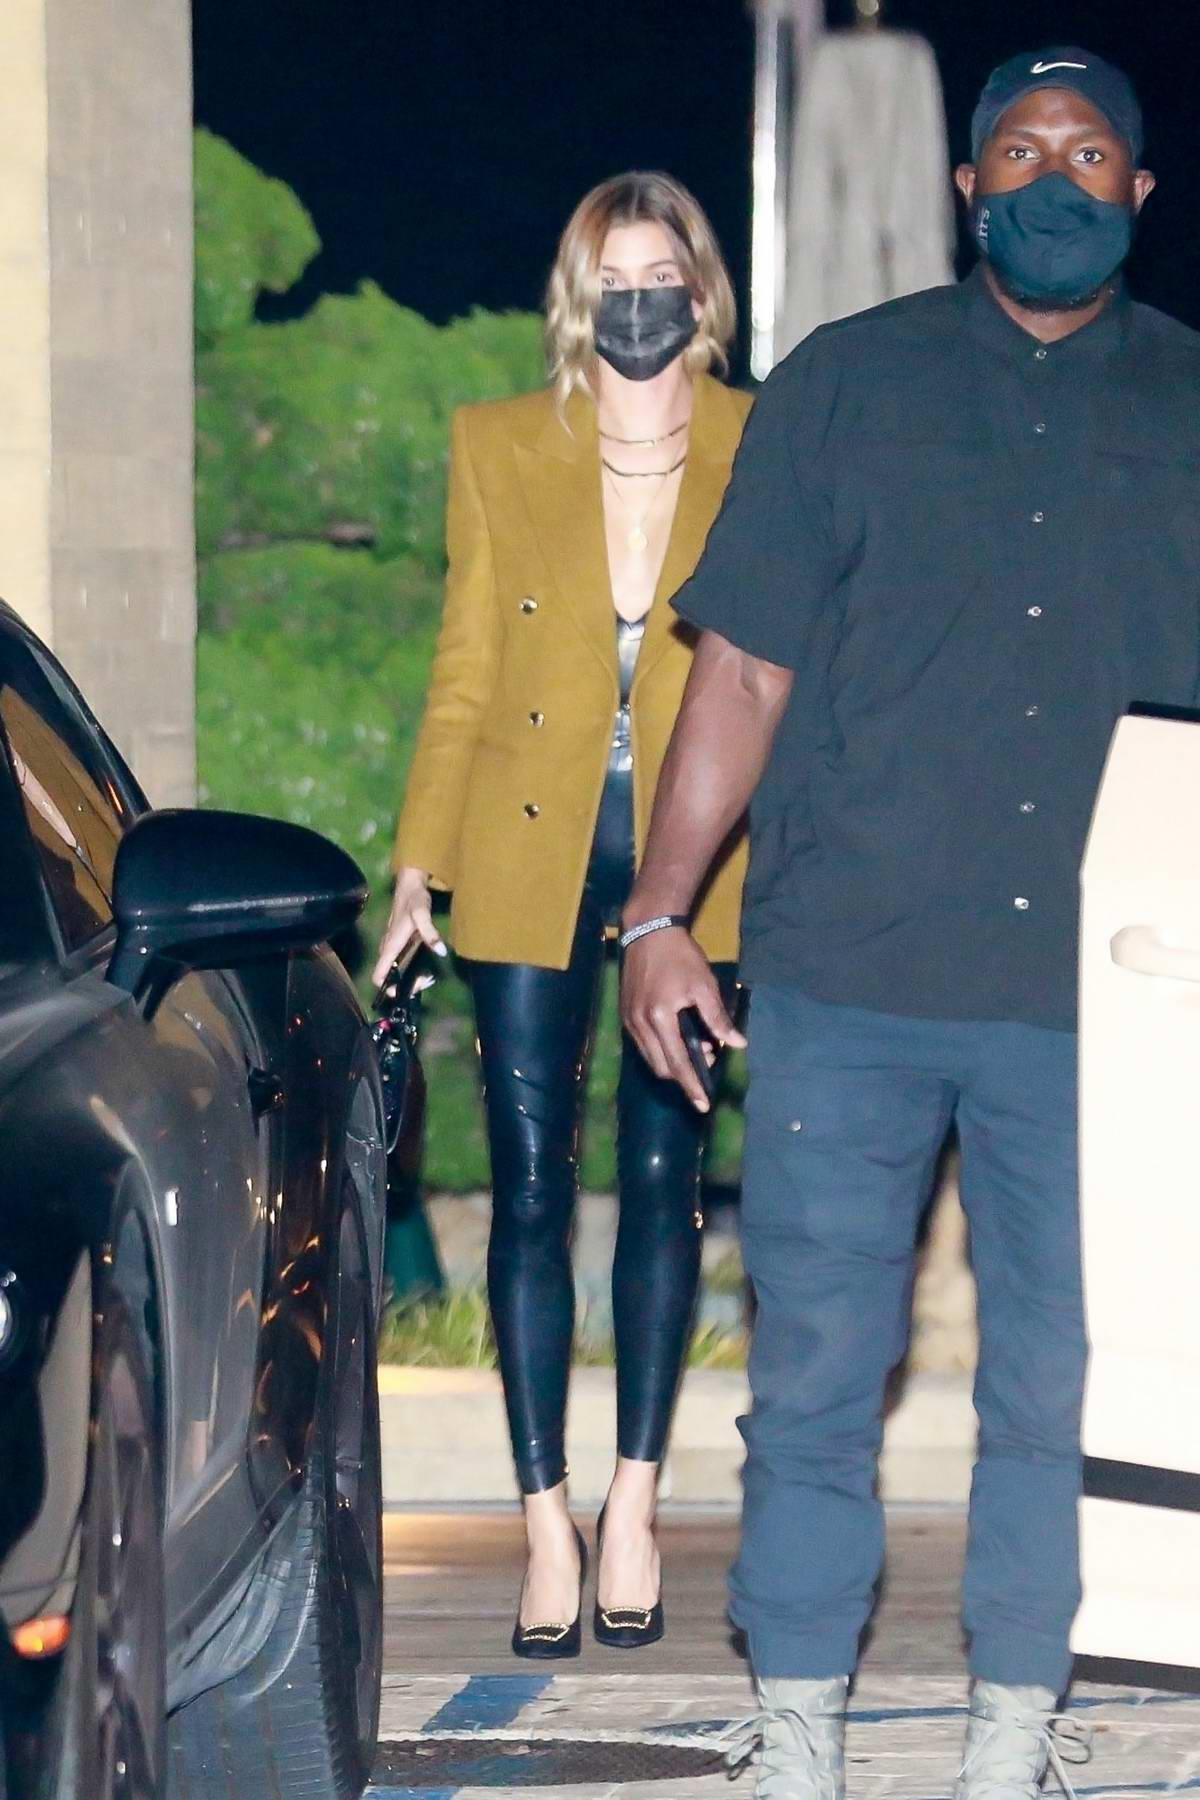 Hailey Bieber and Justin Bieber seen exiting Nobu after enjoying a dinner date in Malibu, California